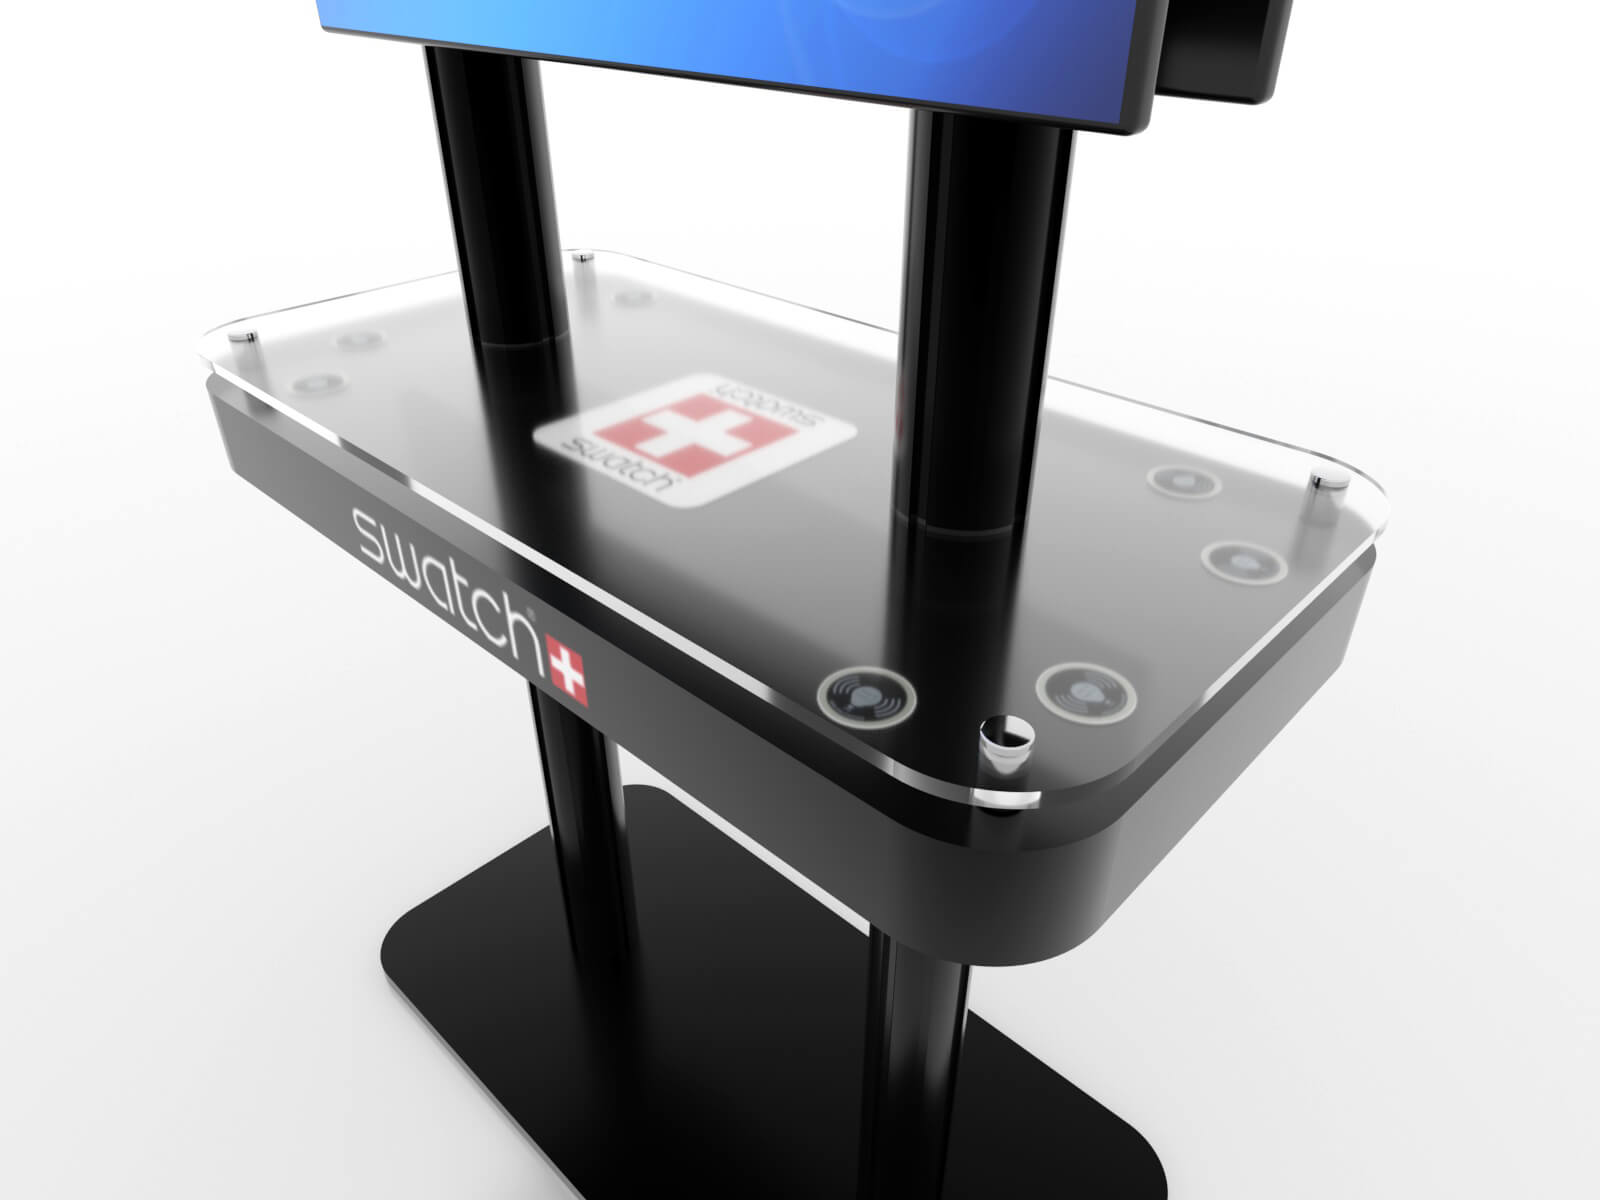 MOD-1477 Trade Show Monitor Stand Charging Station - image 4